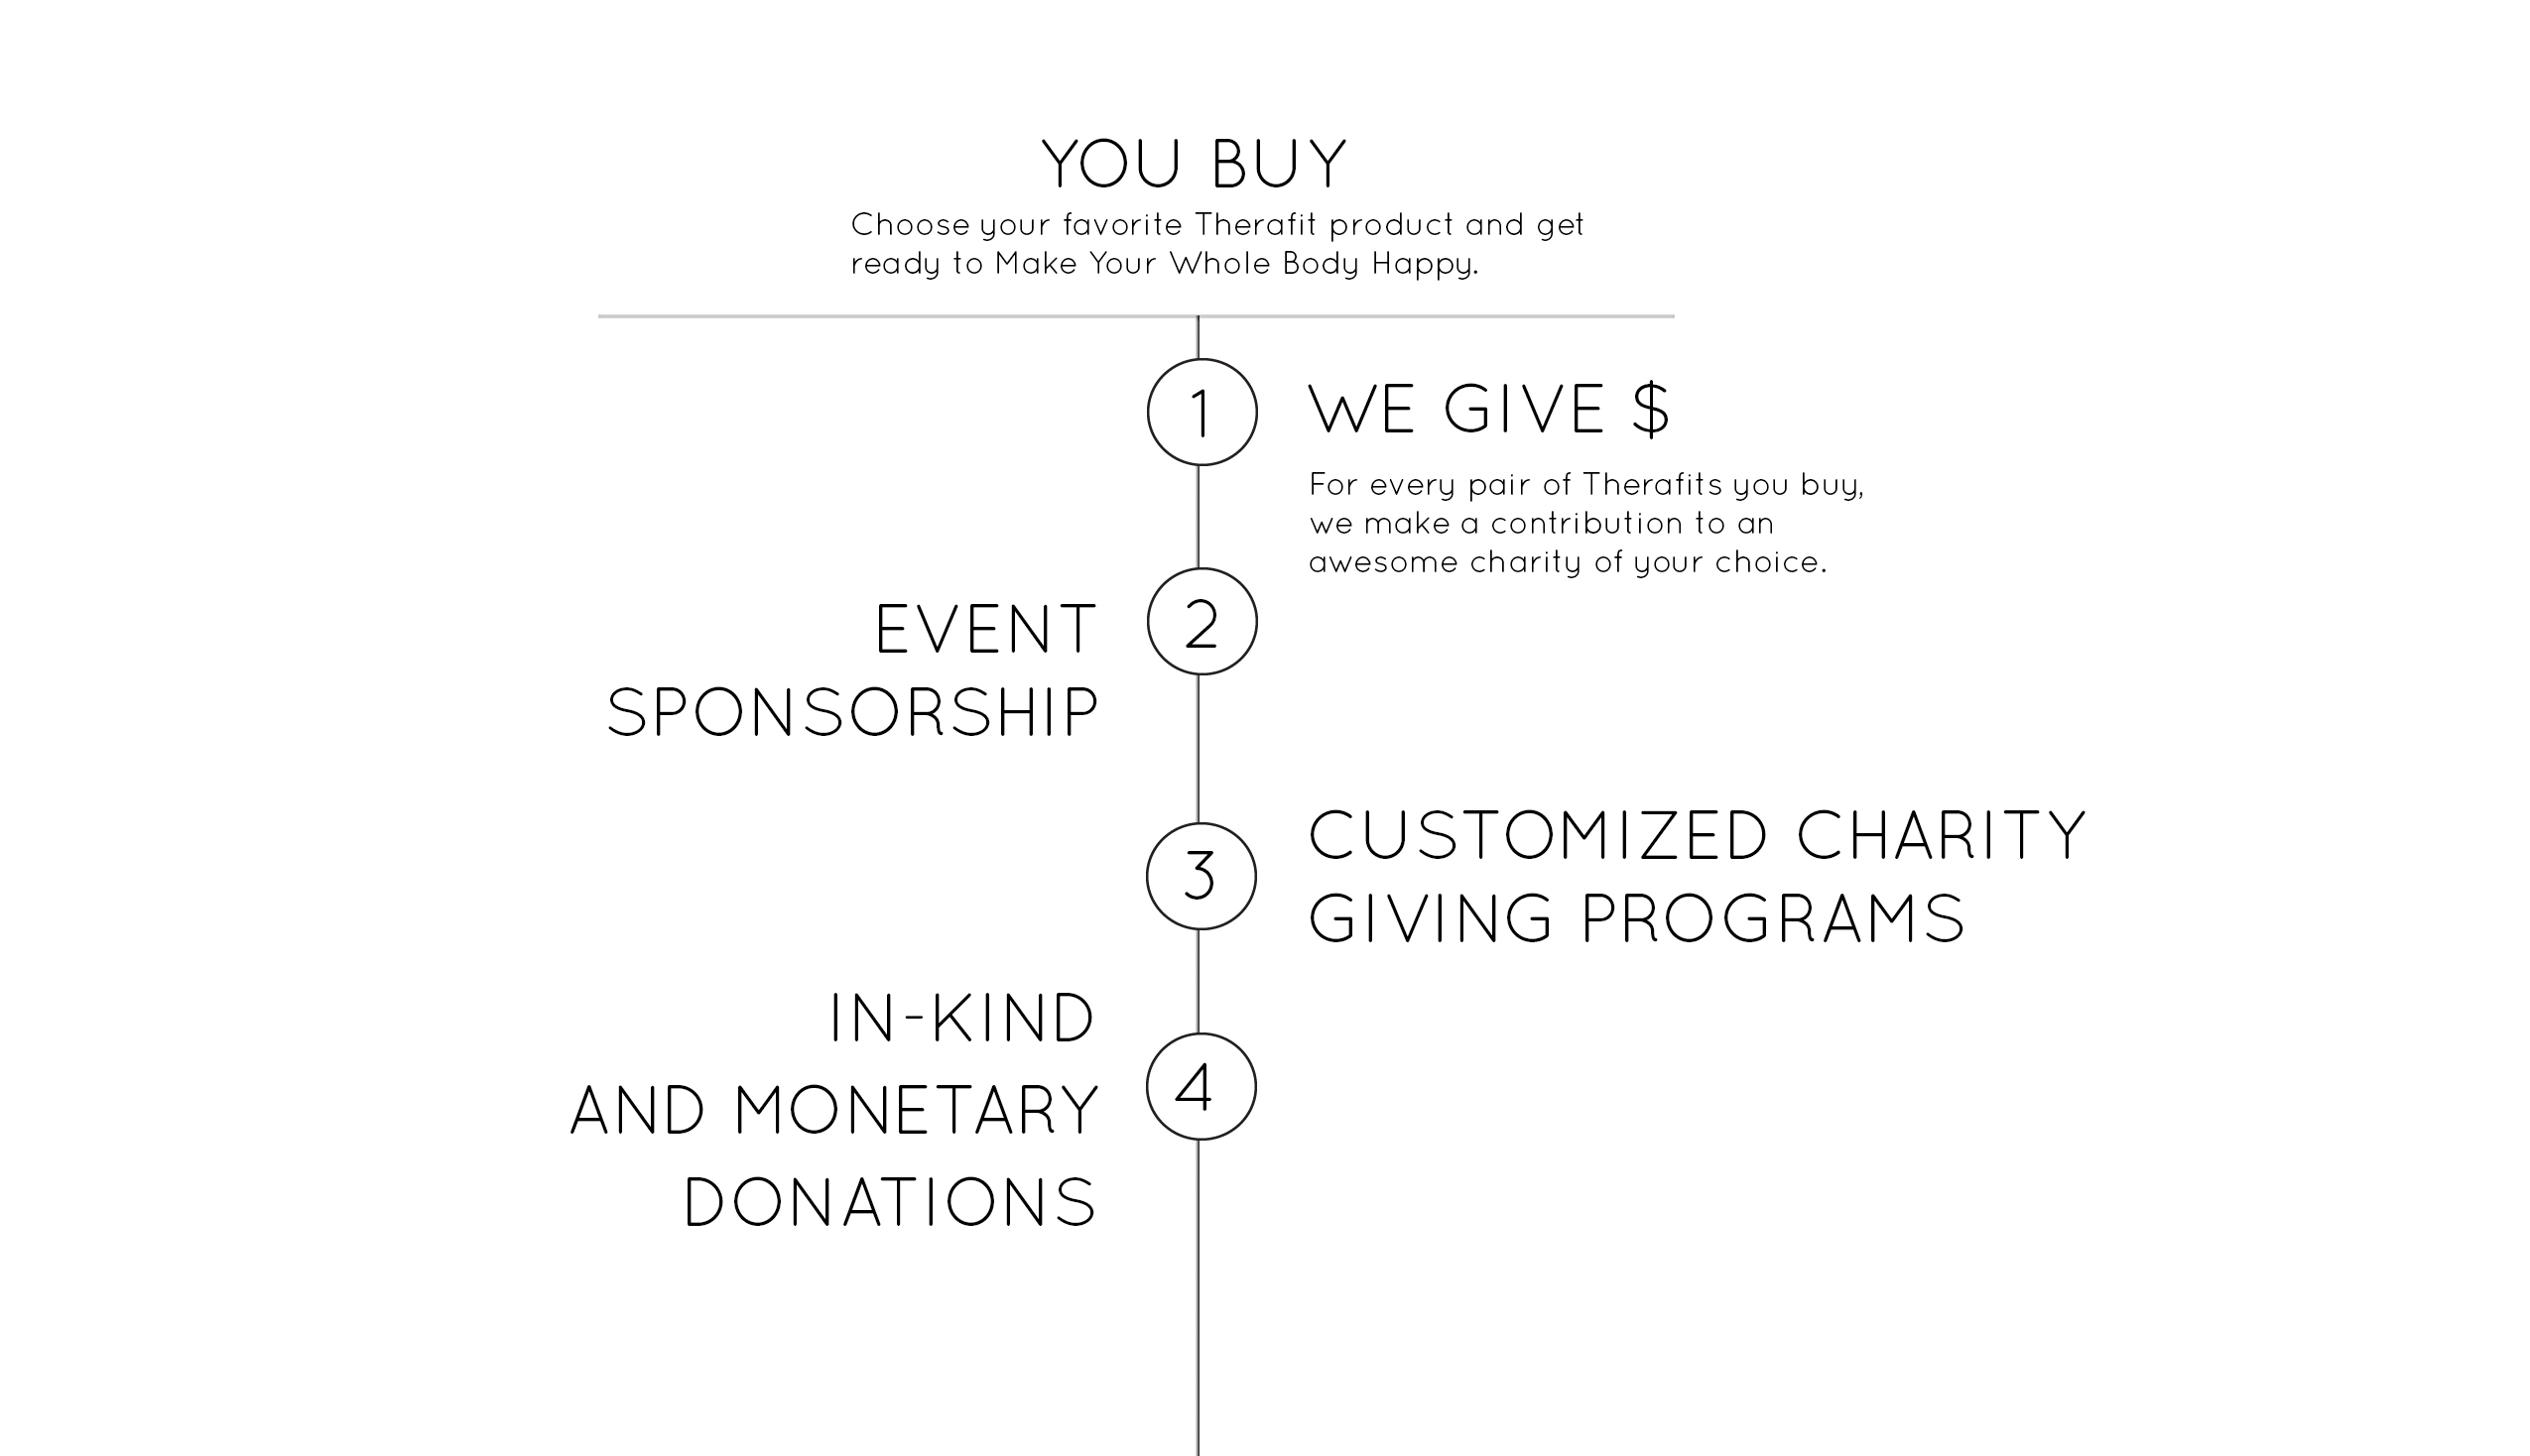 image that shows the way Therafit gives back